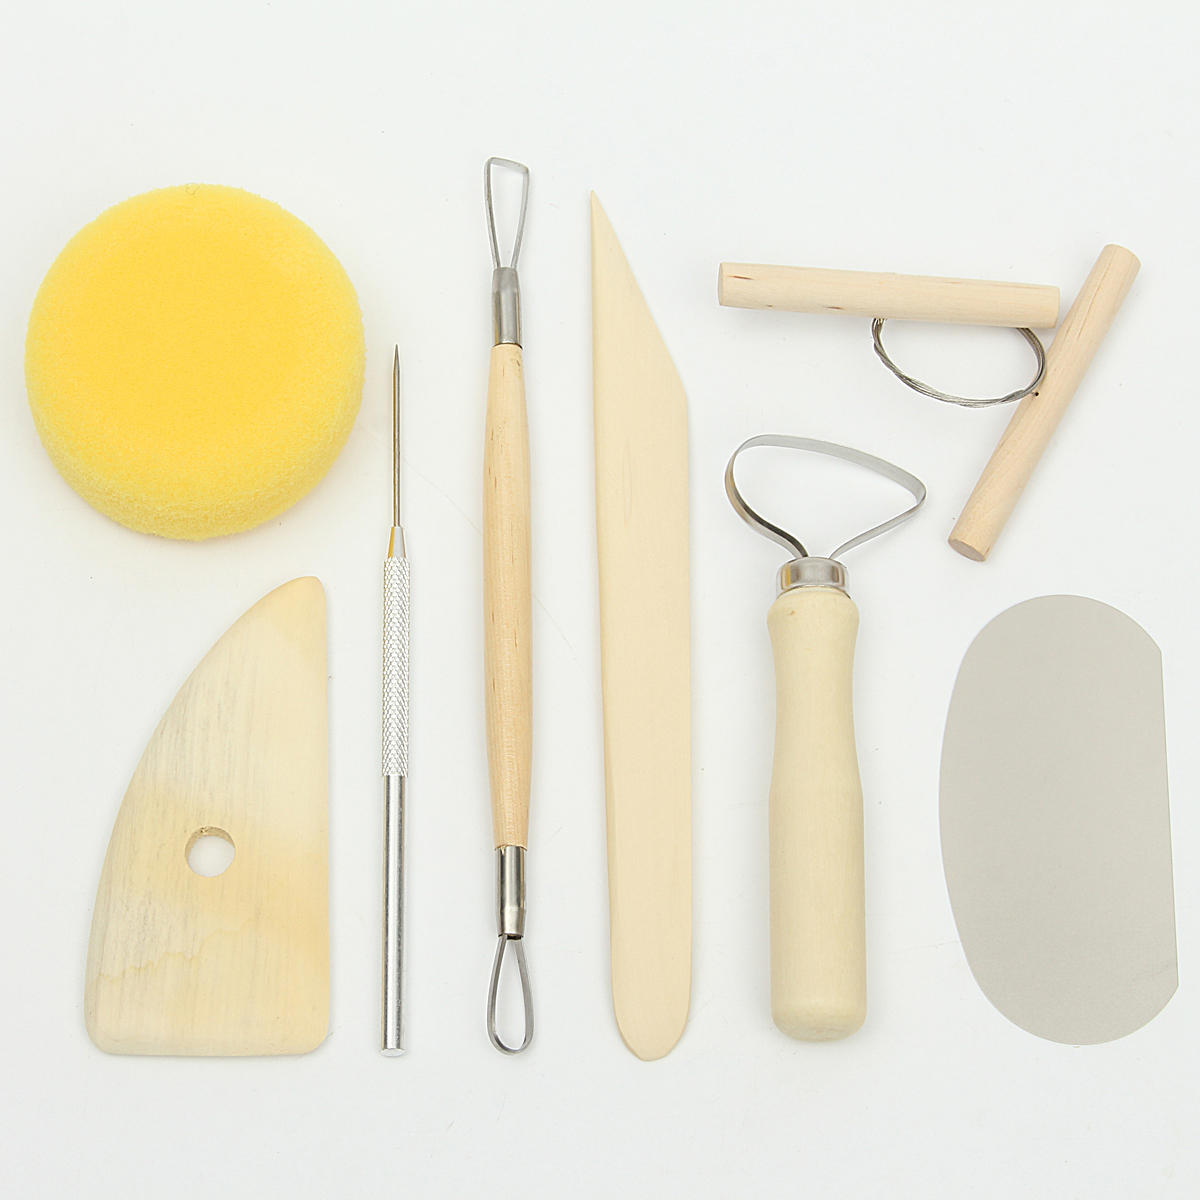 8Pcs Pottery Tools Set Clay Needle Cutter Loop Ribbon Ceramics Clay Sculpting Modeling Tool Kit